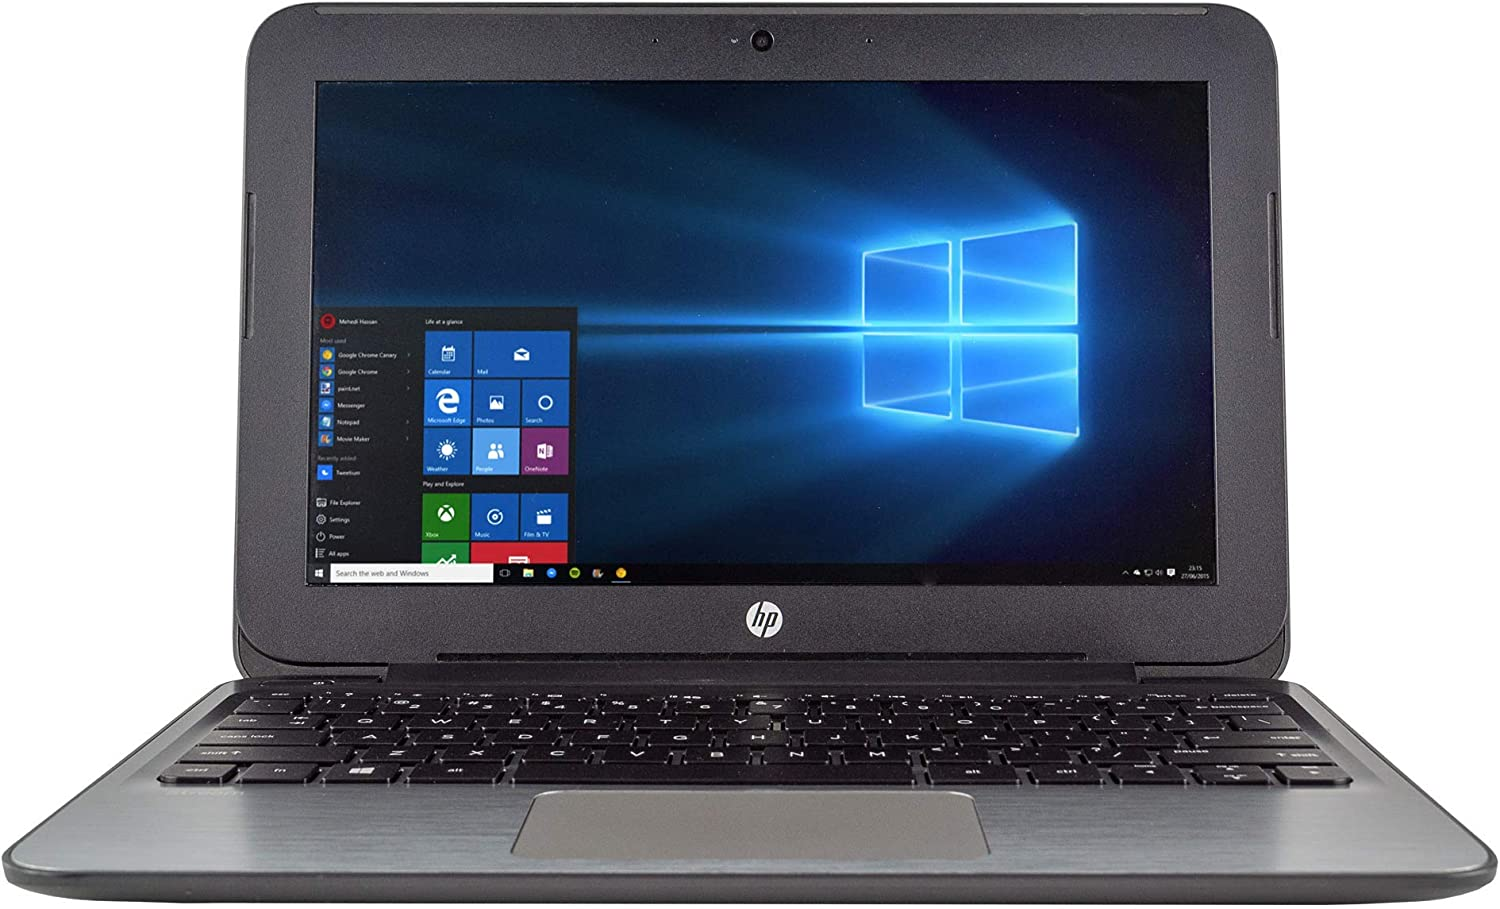 "HP Stream 11 Pro G2 Laptop Computer 11.6"" LED Display PC, Intel Dual-Core Processor, 4GB DDR3 RAM, 64GB eMMC, HD Webcam, HDMI, WiFi, Bluetooth, Windows 10 (Renewed)"